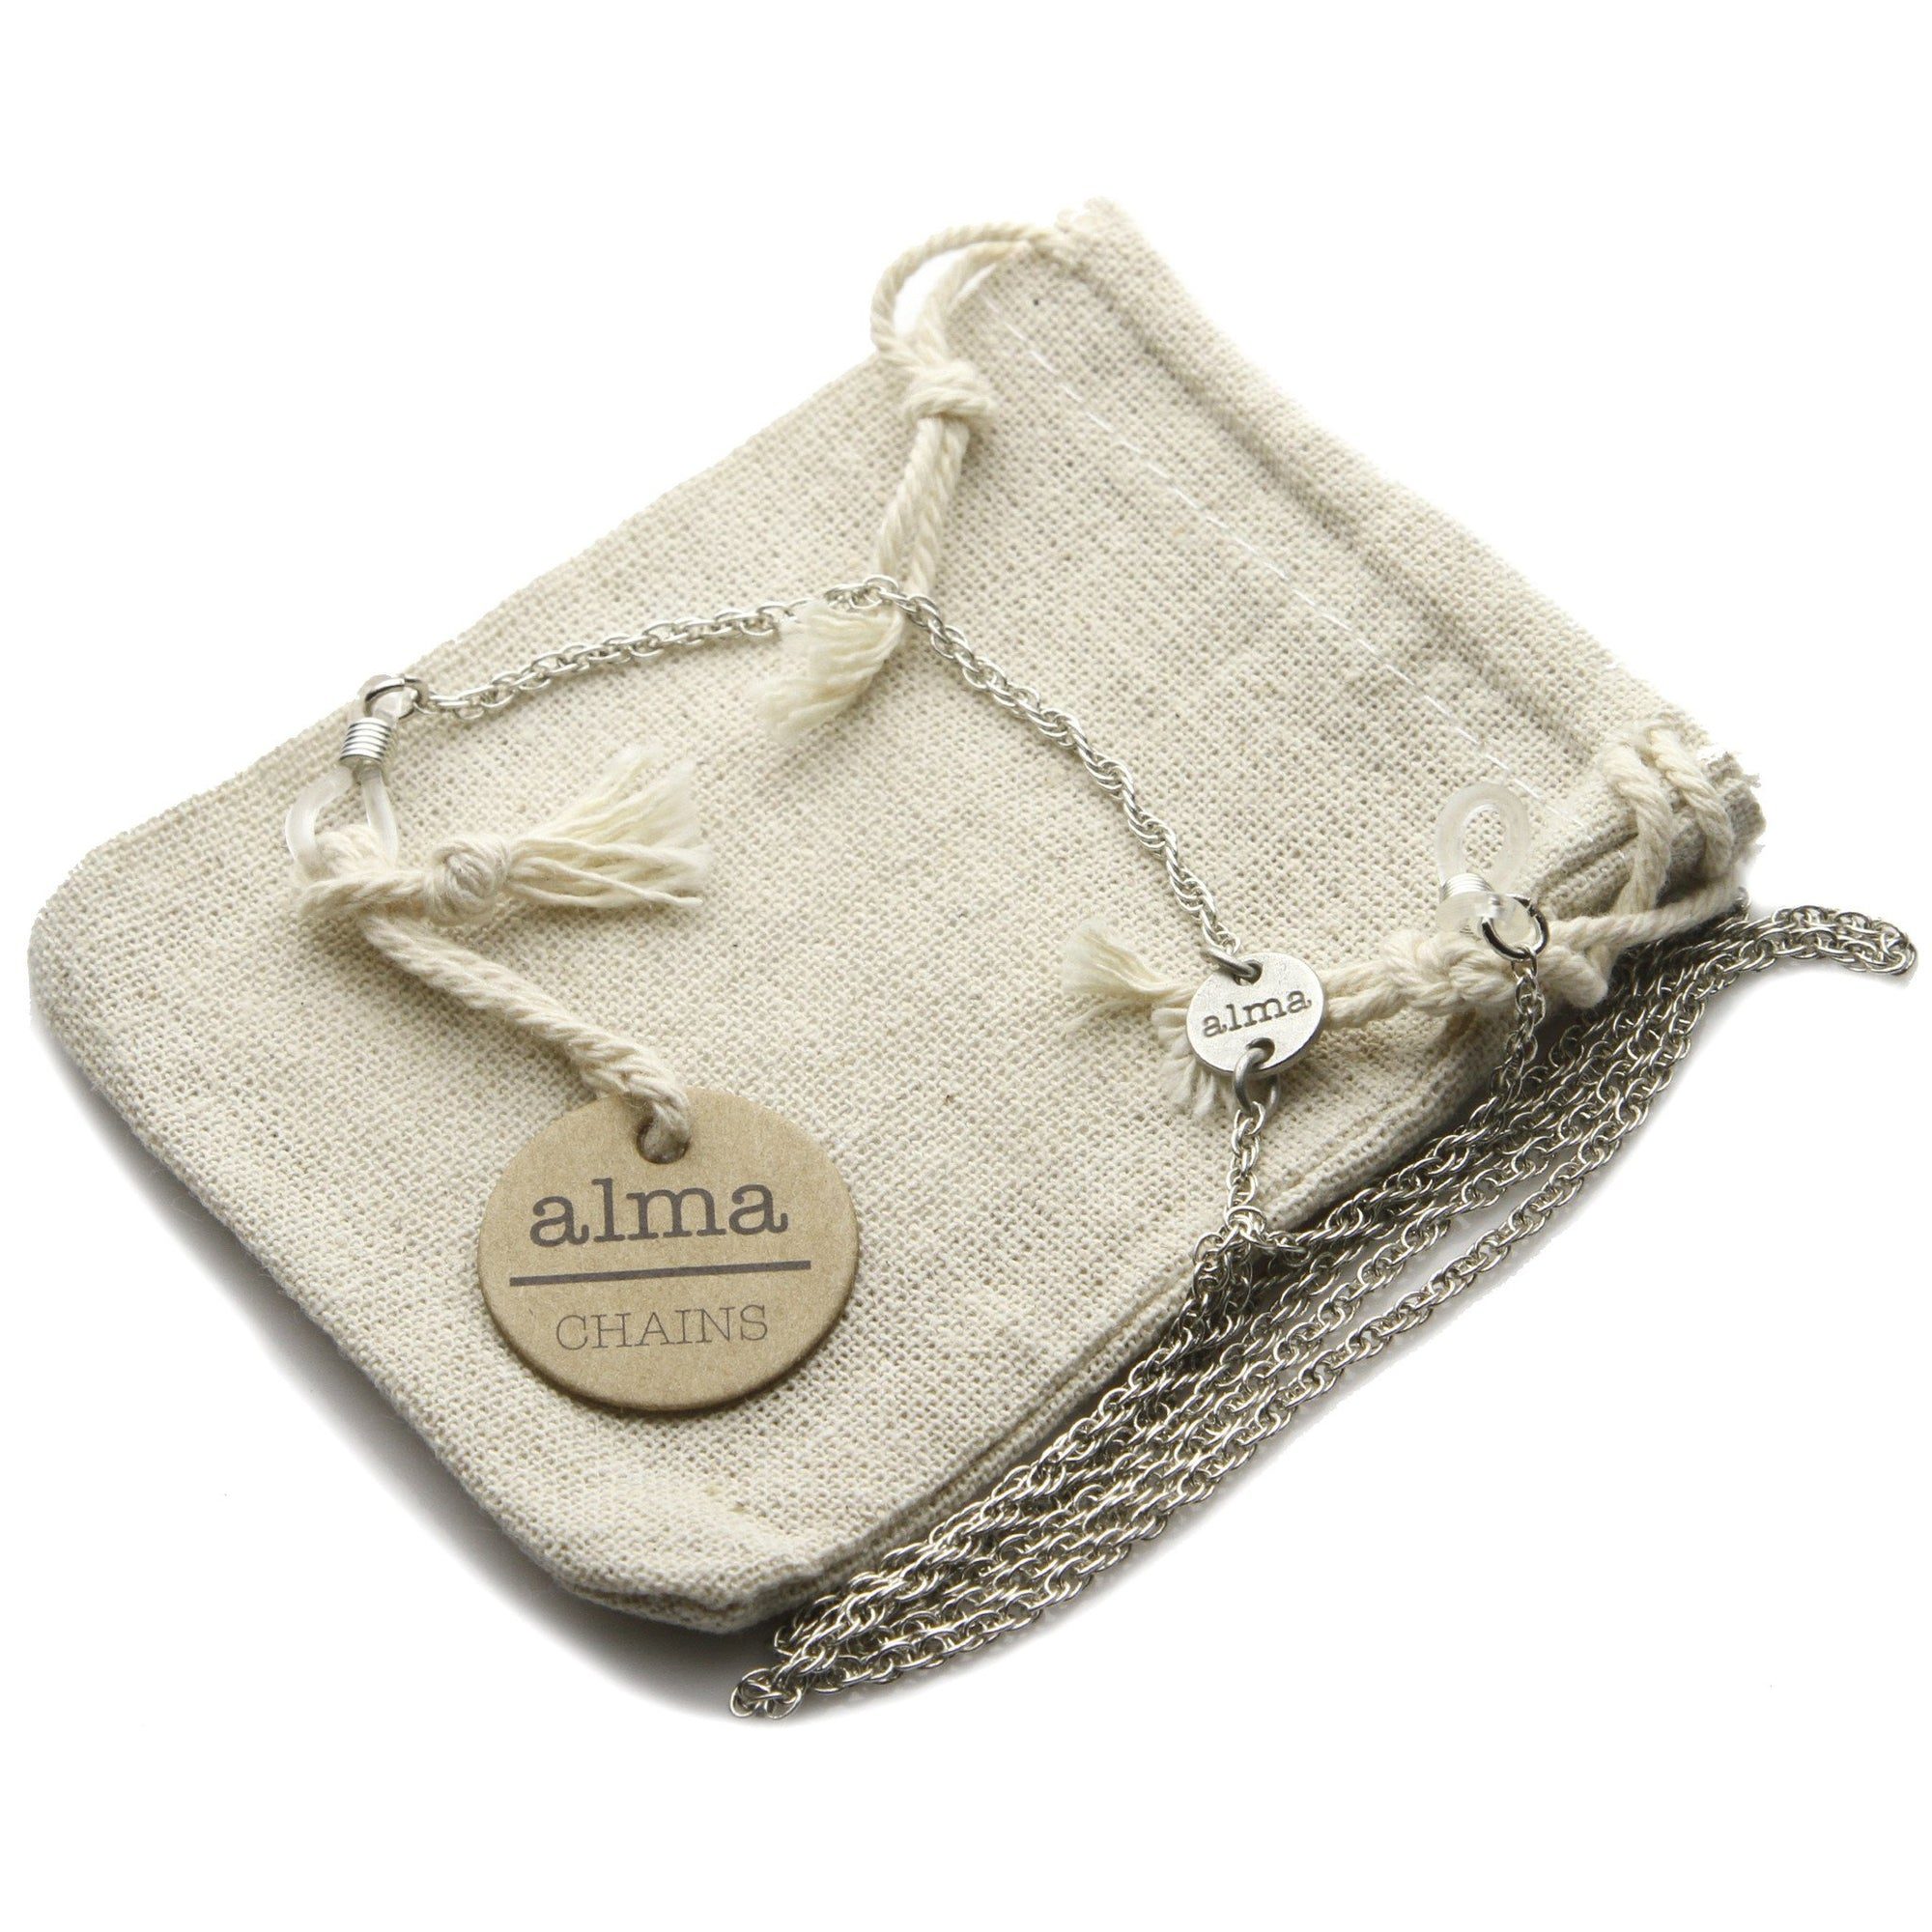 Alma Chains Eyewear Accessory - Sandra Dee